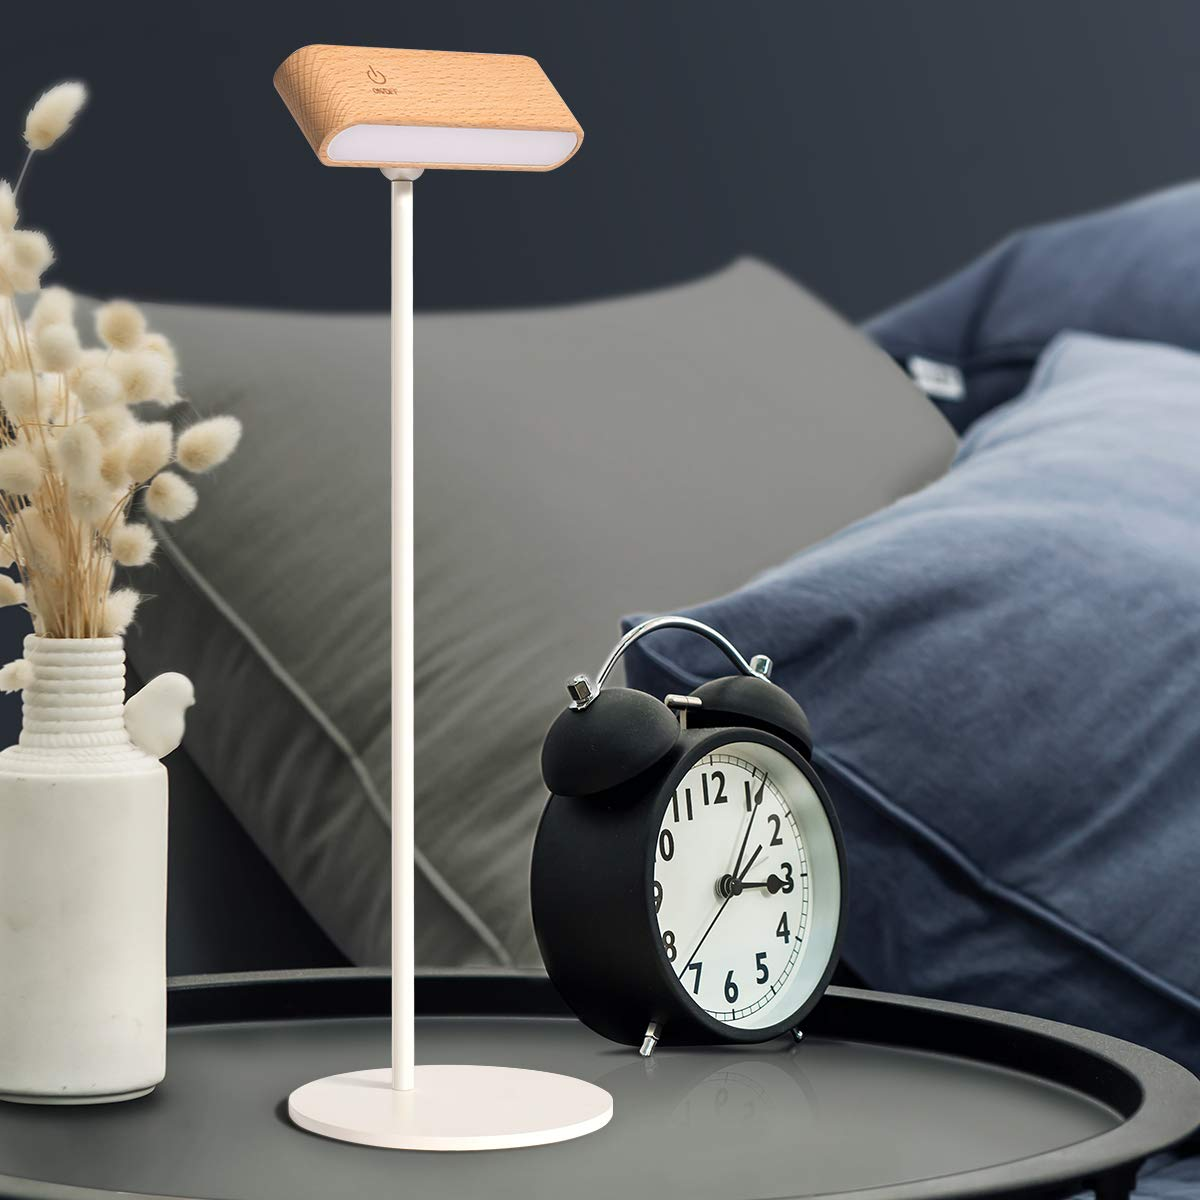 LED Reading Light Modern Wooden Dimmable 360 Adjustable Reading Lamp, USB Rechargeable Cordless Portable Books Reading Lighting Battery Powered for Office College Dorm Study Home Bedroom Bedside